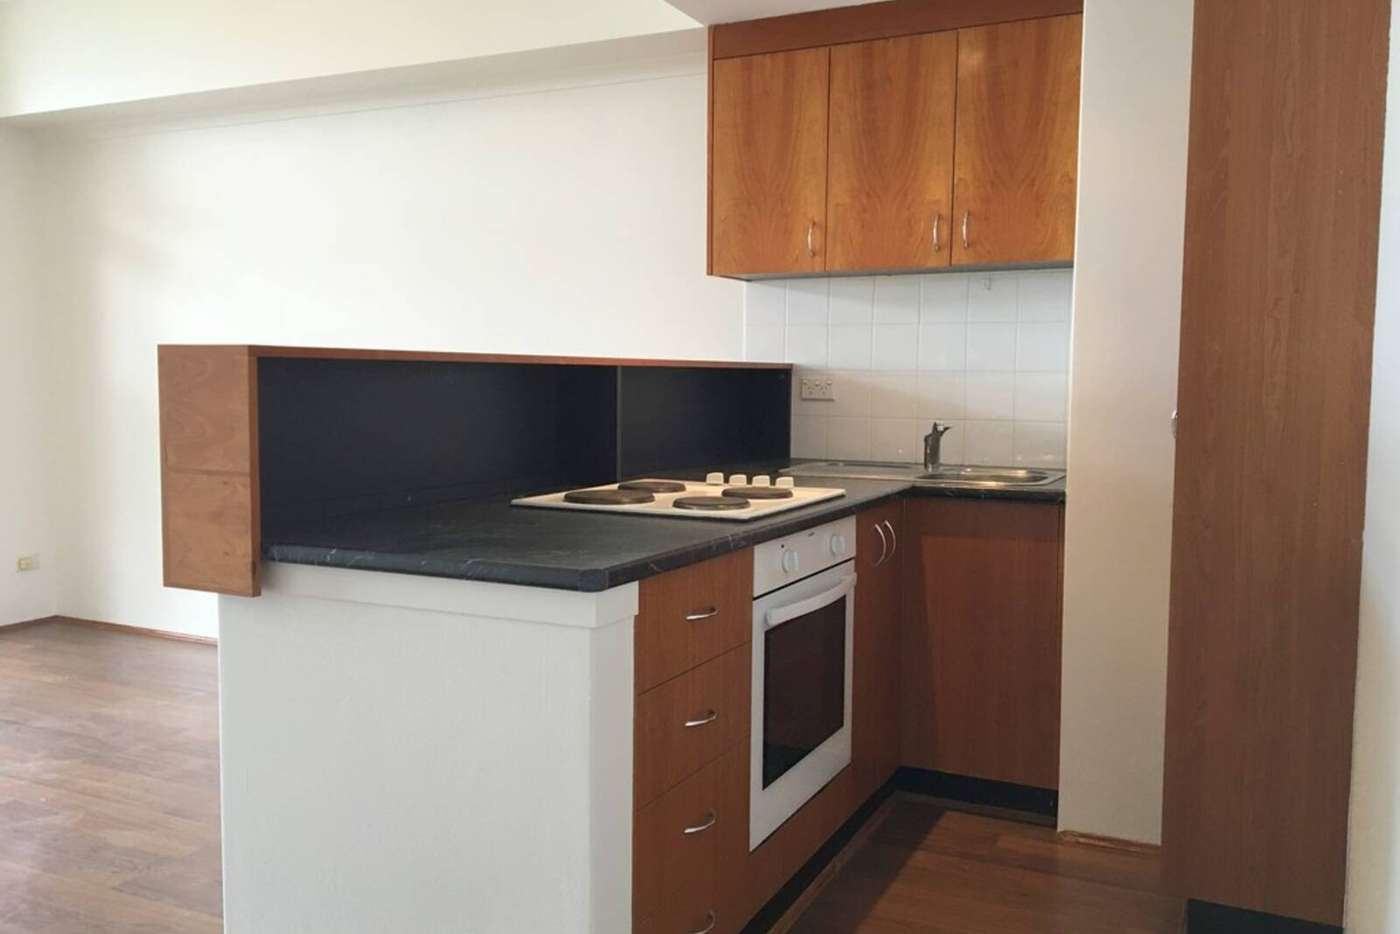 Fifth view of Homely apartment listing, 407/284 Pacific Hwy, Greenwich NSW 2065